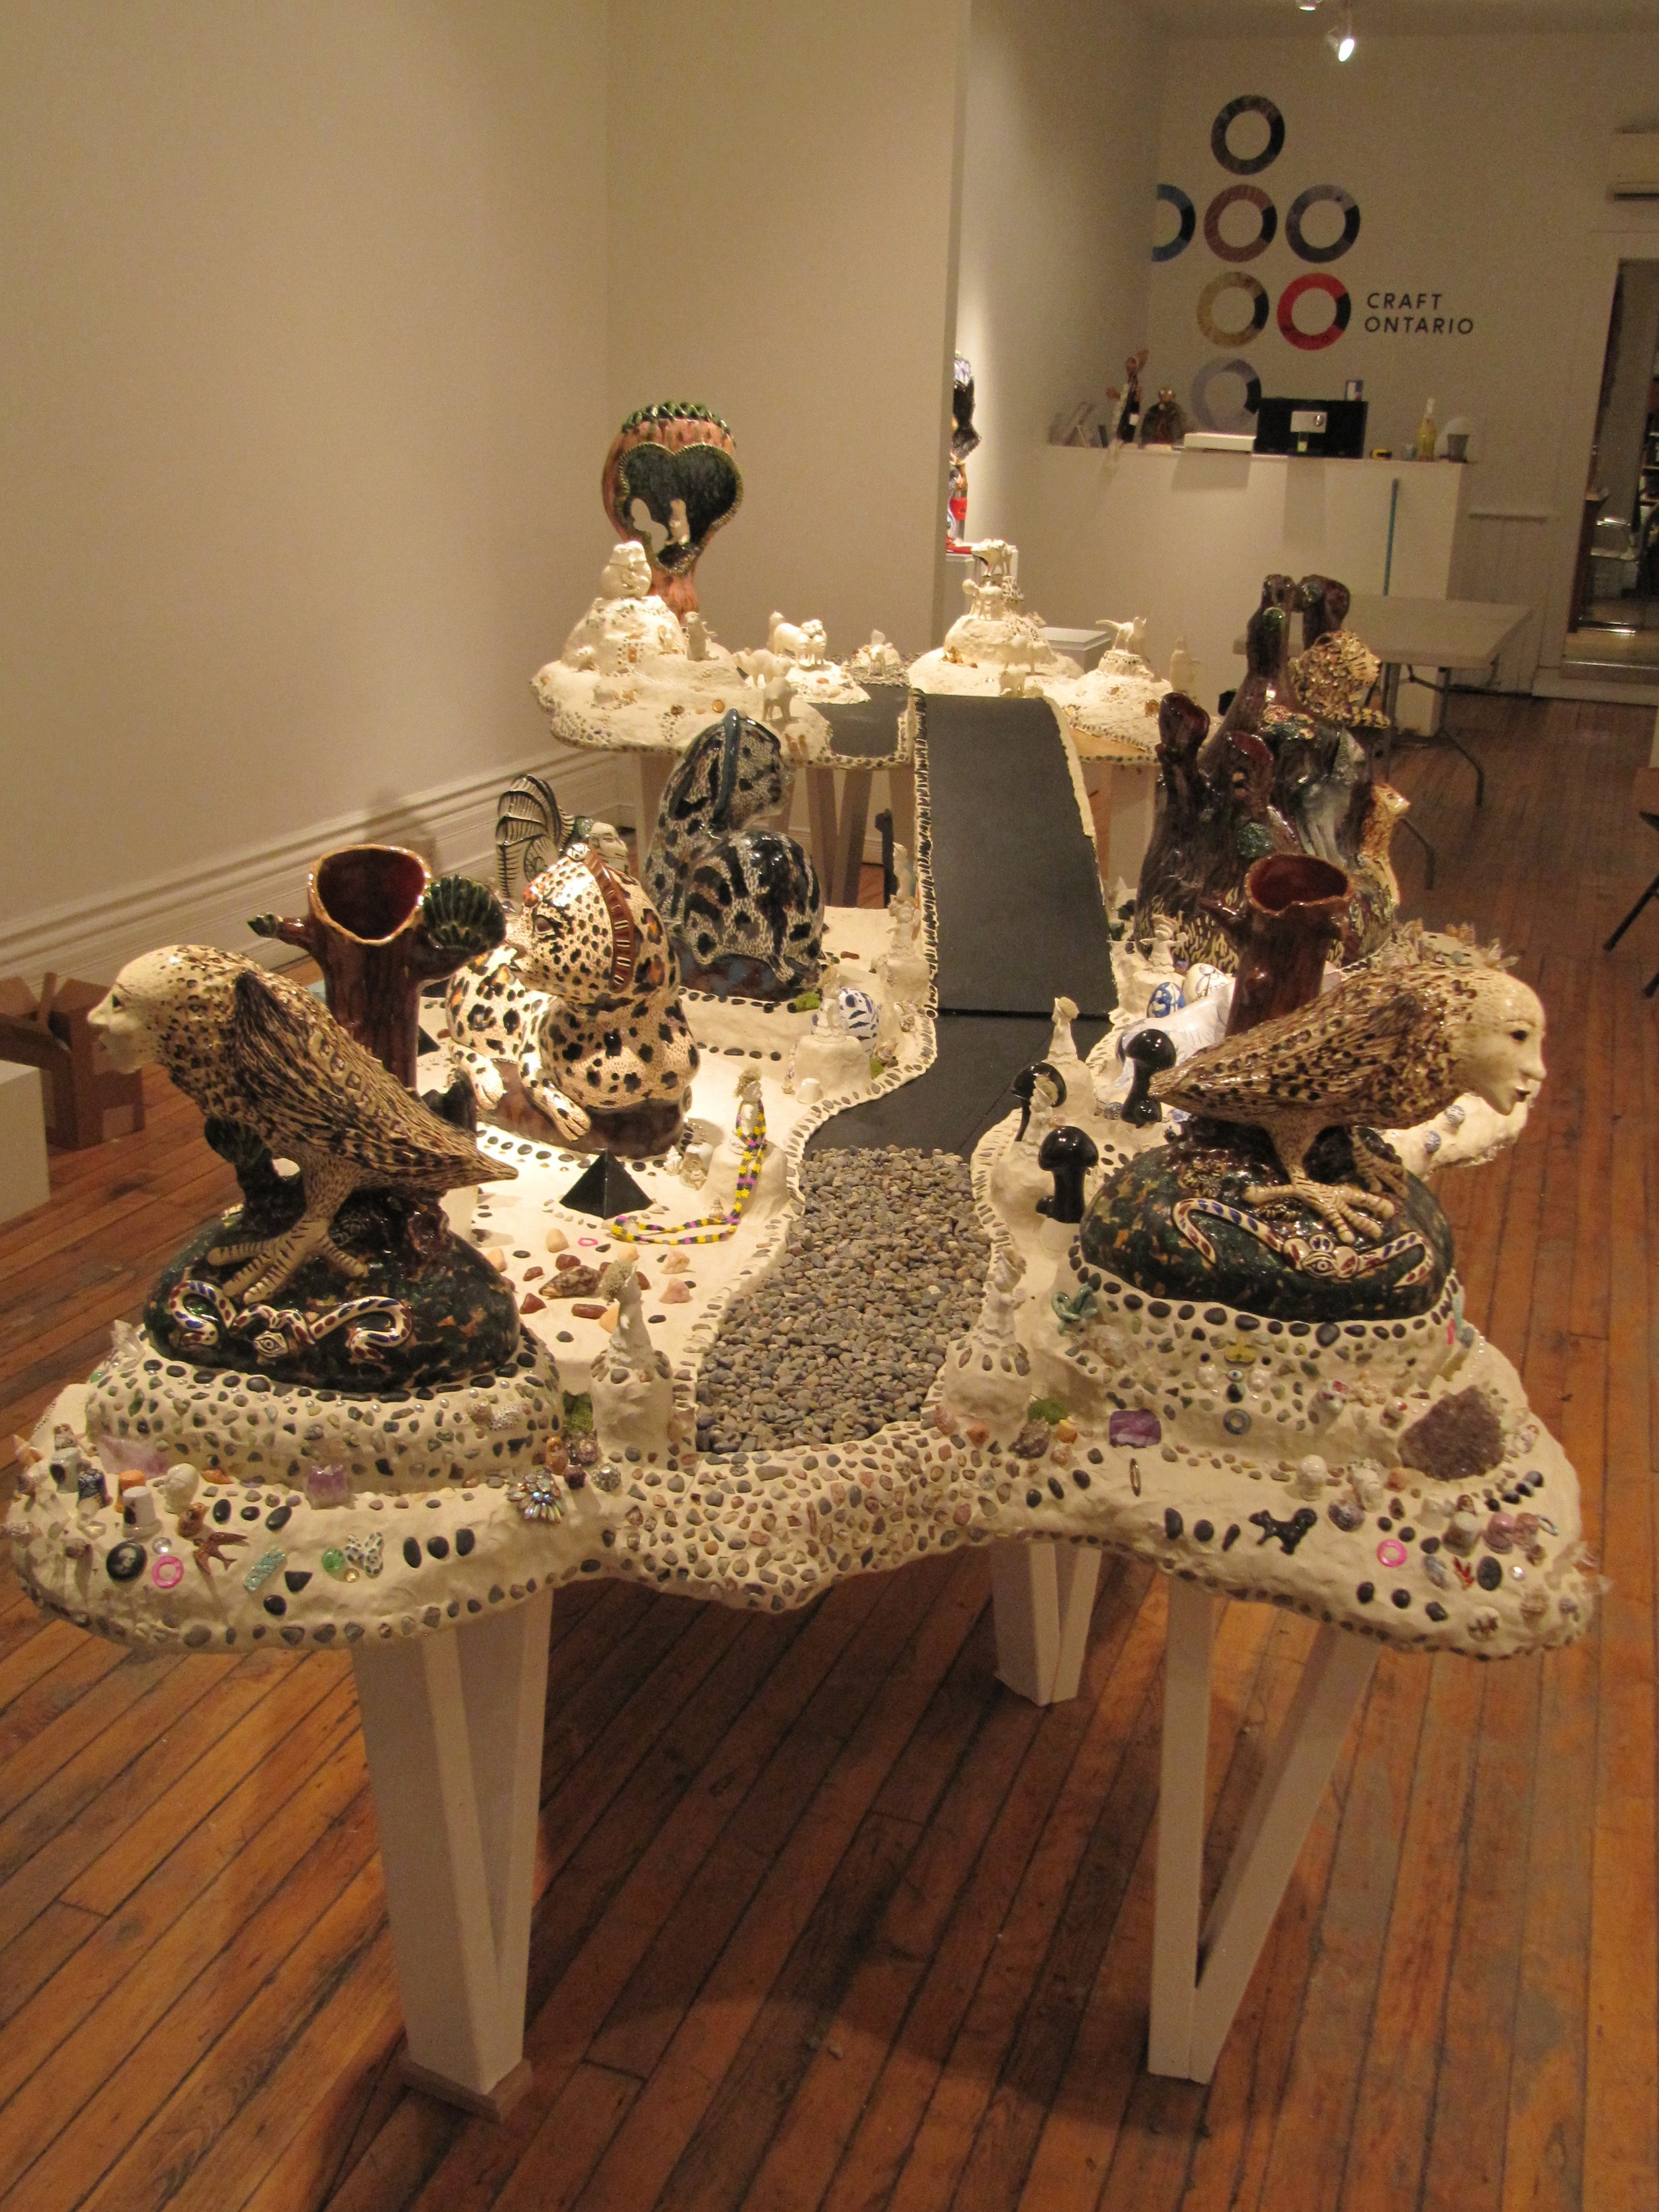 Gather, installation by Janet Macpherson and Lindsay Montgomery, 2014